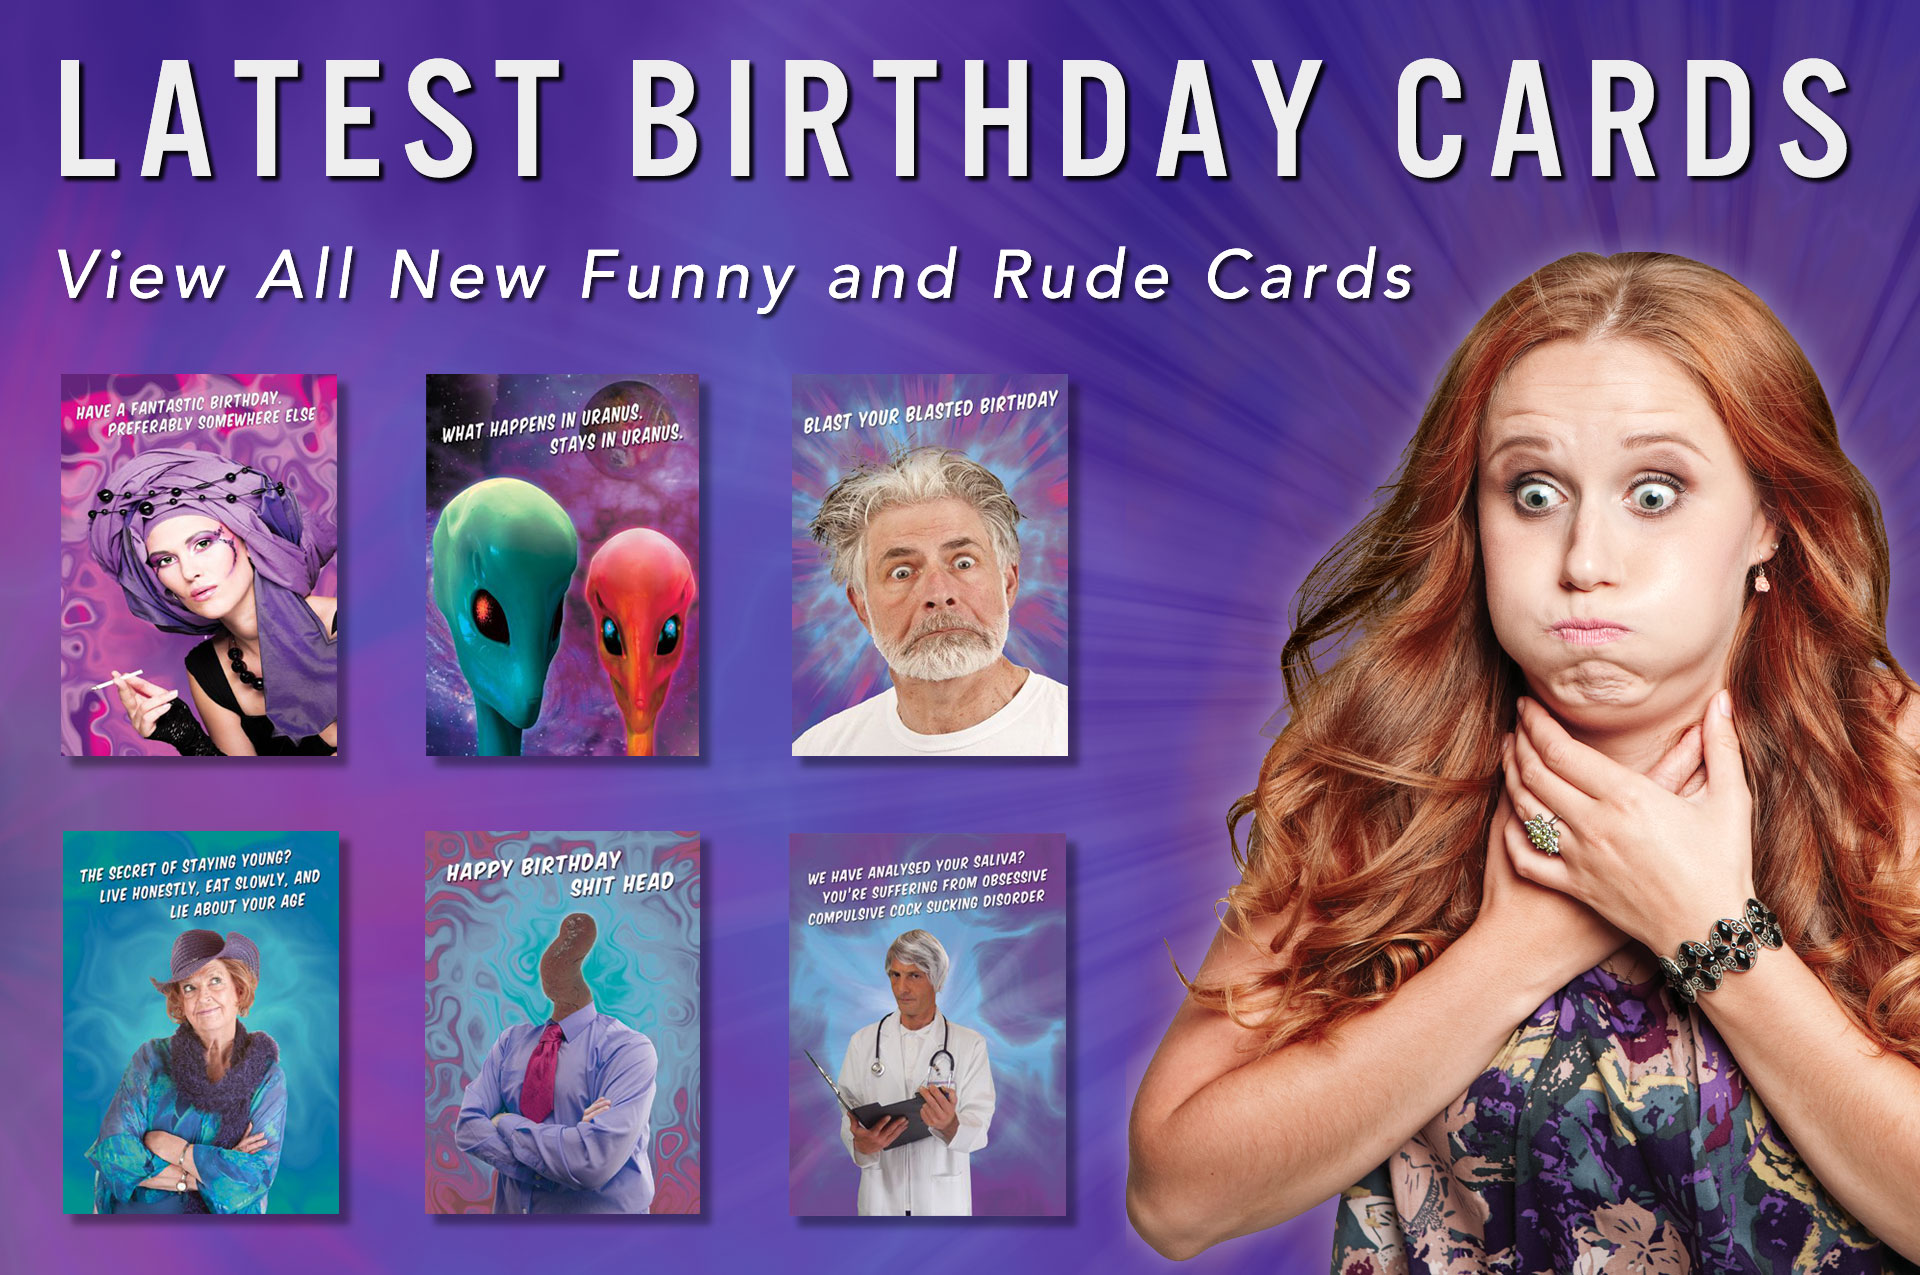 Latest Birthday Cards - View all New Funny and Rude Cards